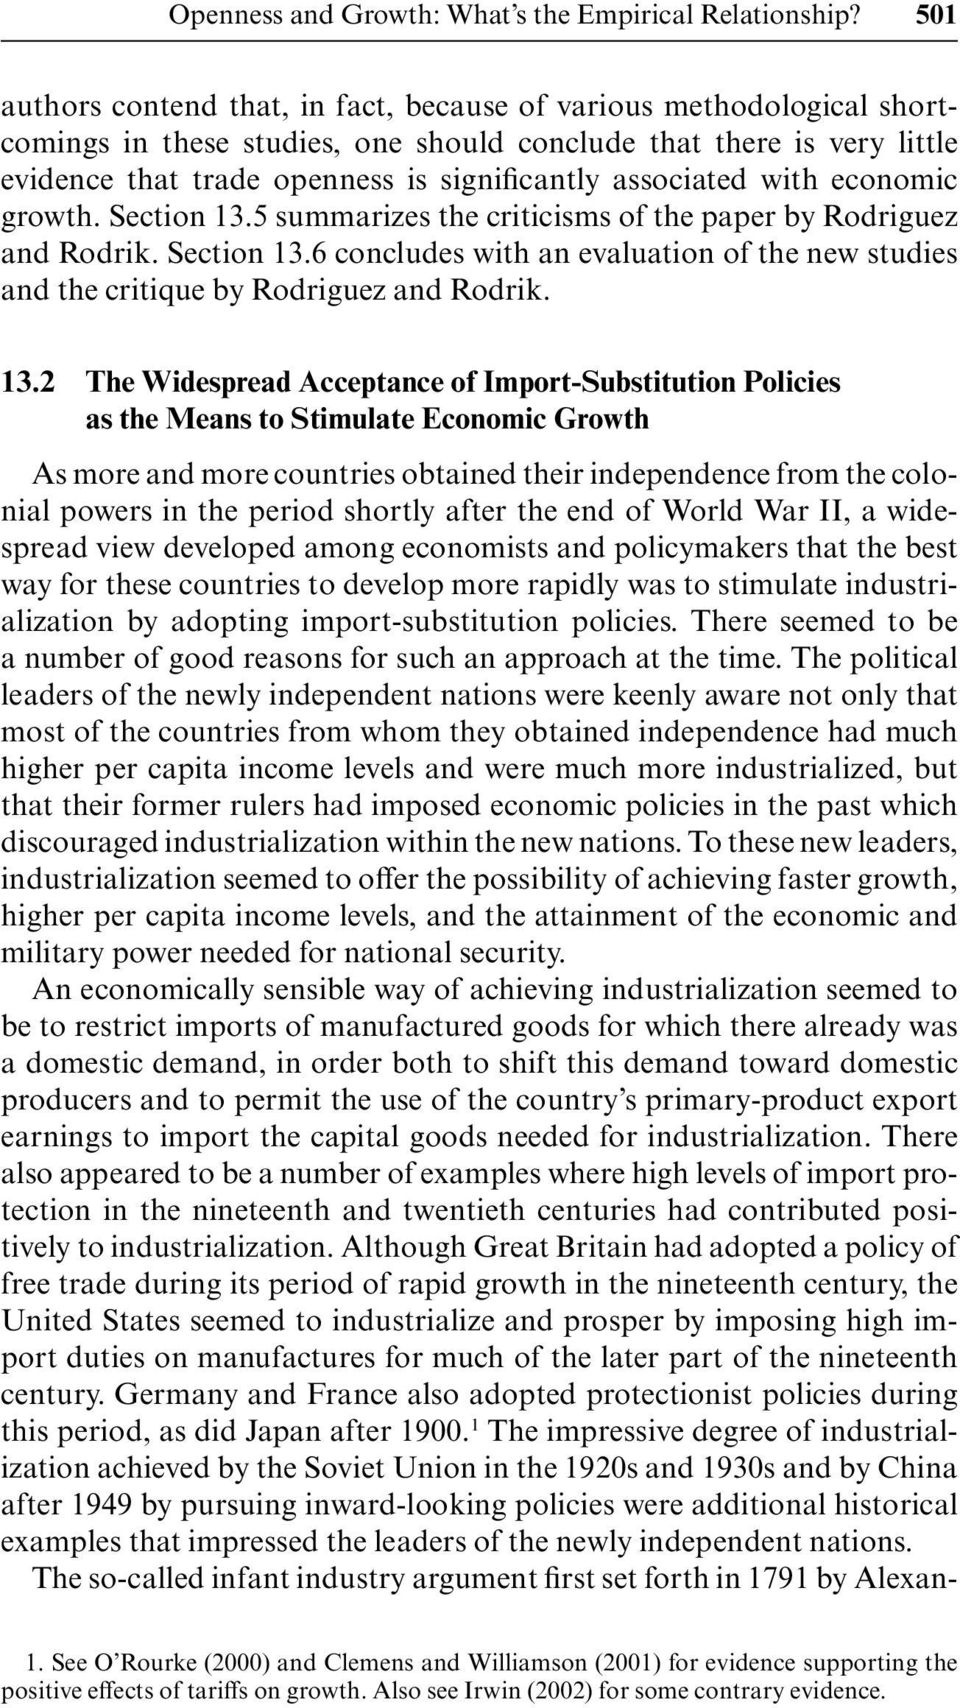 associated with economic growth. Section 13.5 summarizes the criticisms of the paper by Rodriguez and Rodrik. Section 13.6 concludes with an evaluation of the new studies and the critique by Rodriguez and Rodrik.